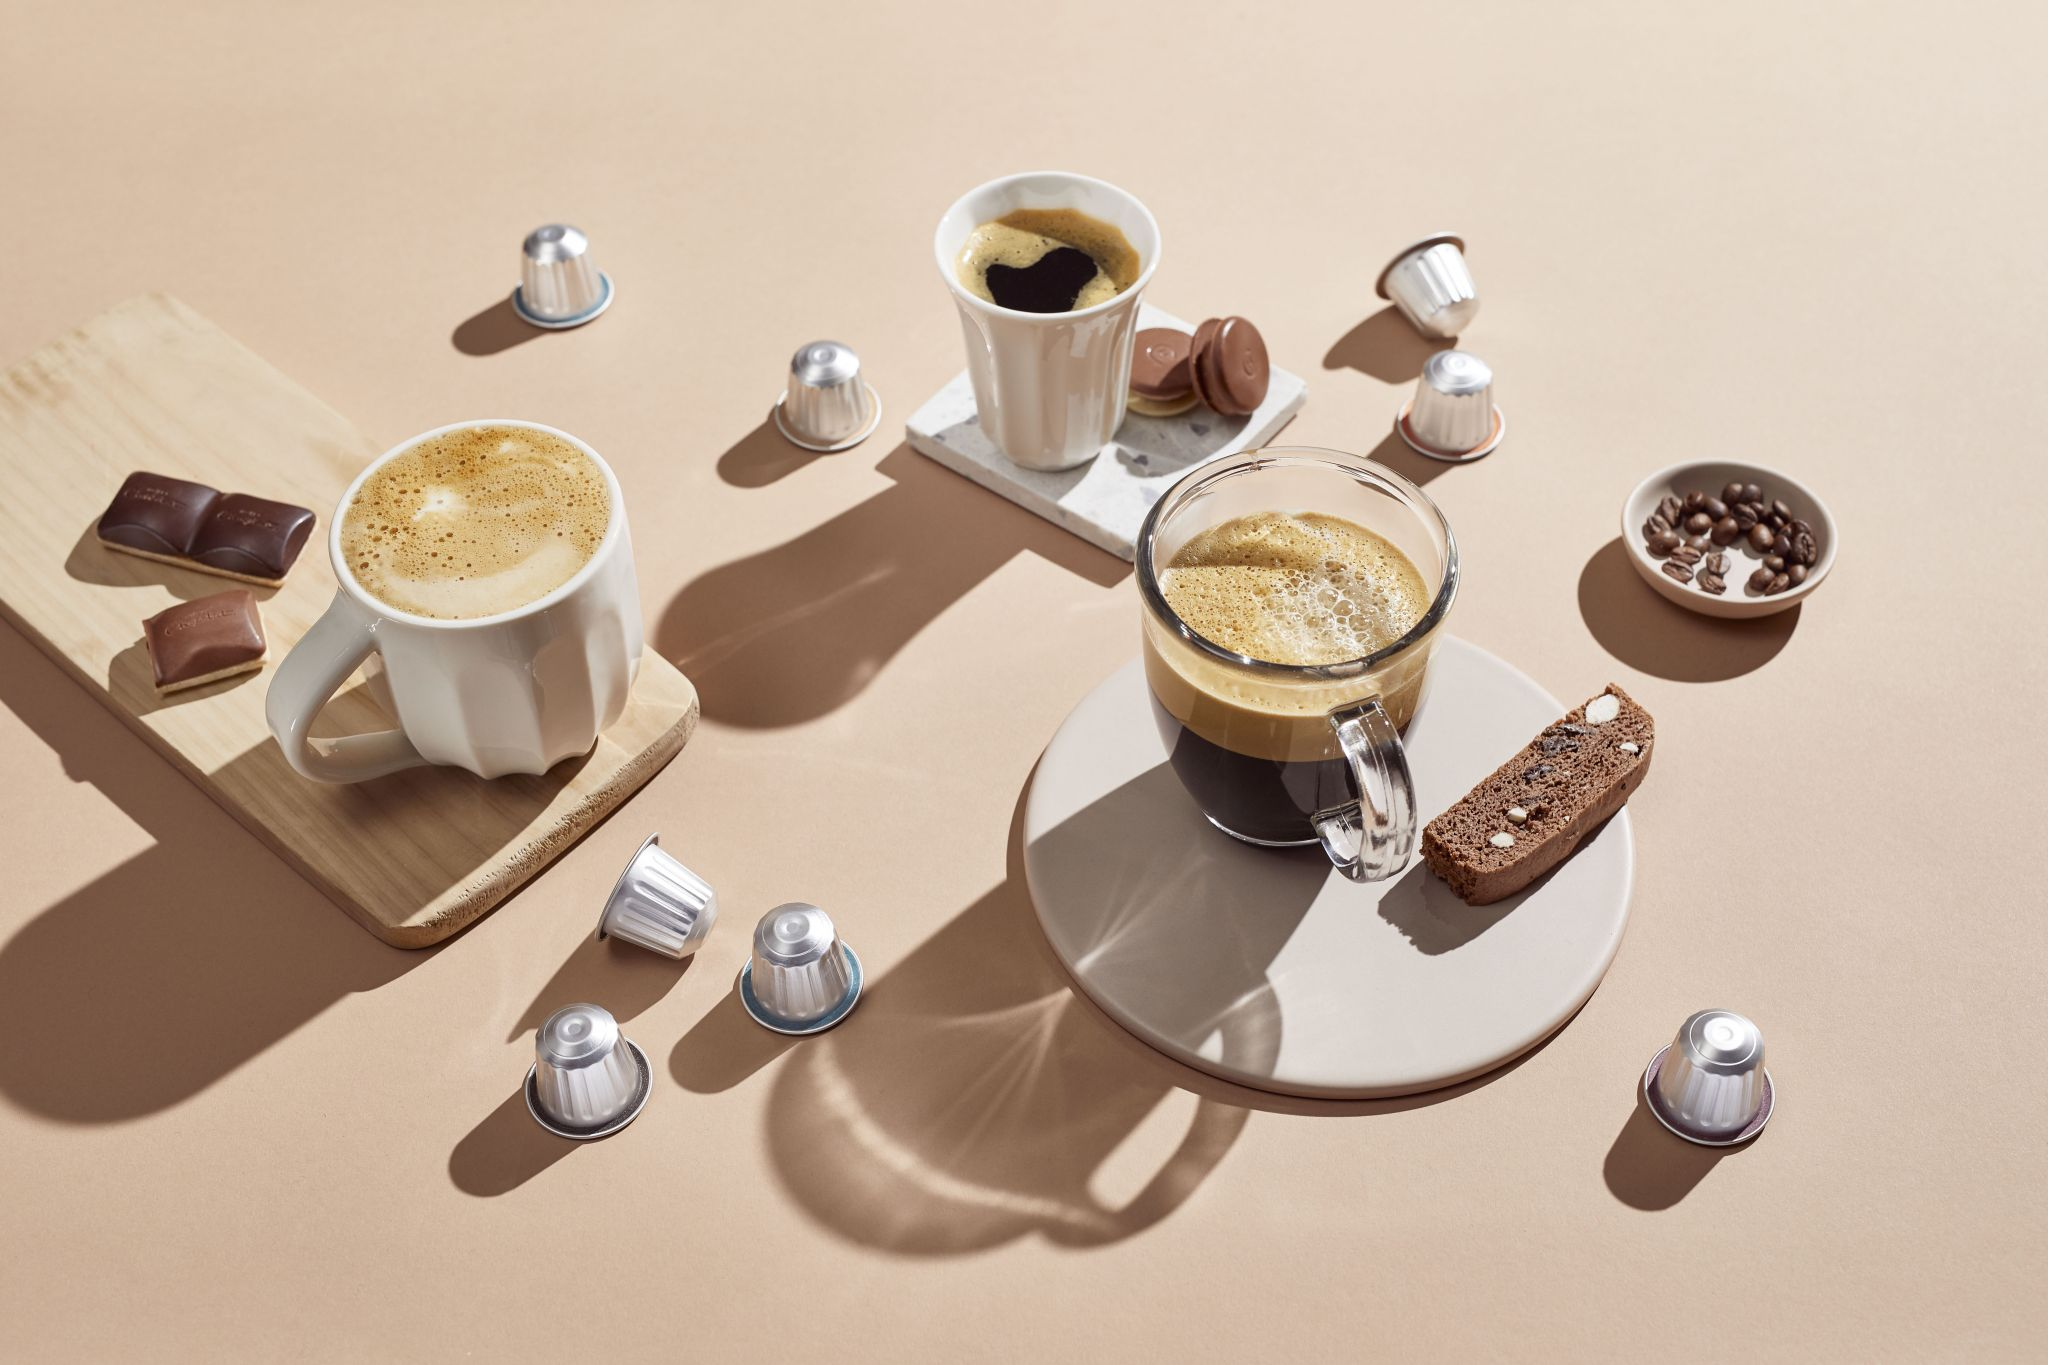 coffee and chocolates flat lay image from Hotel Chocolat